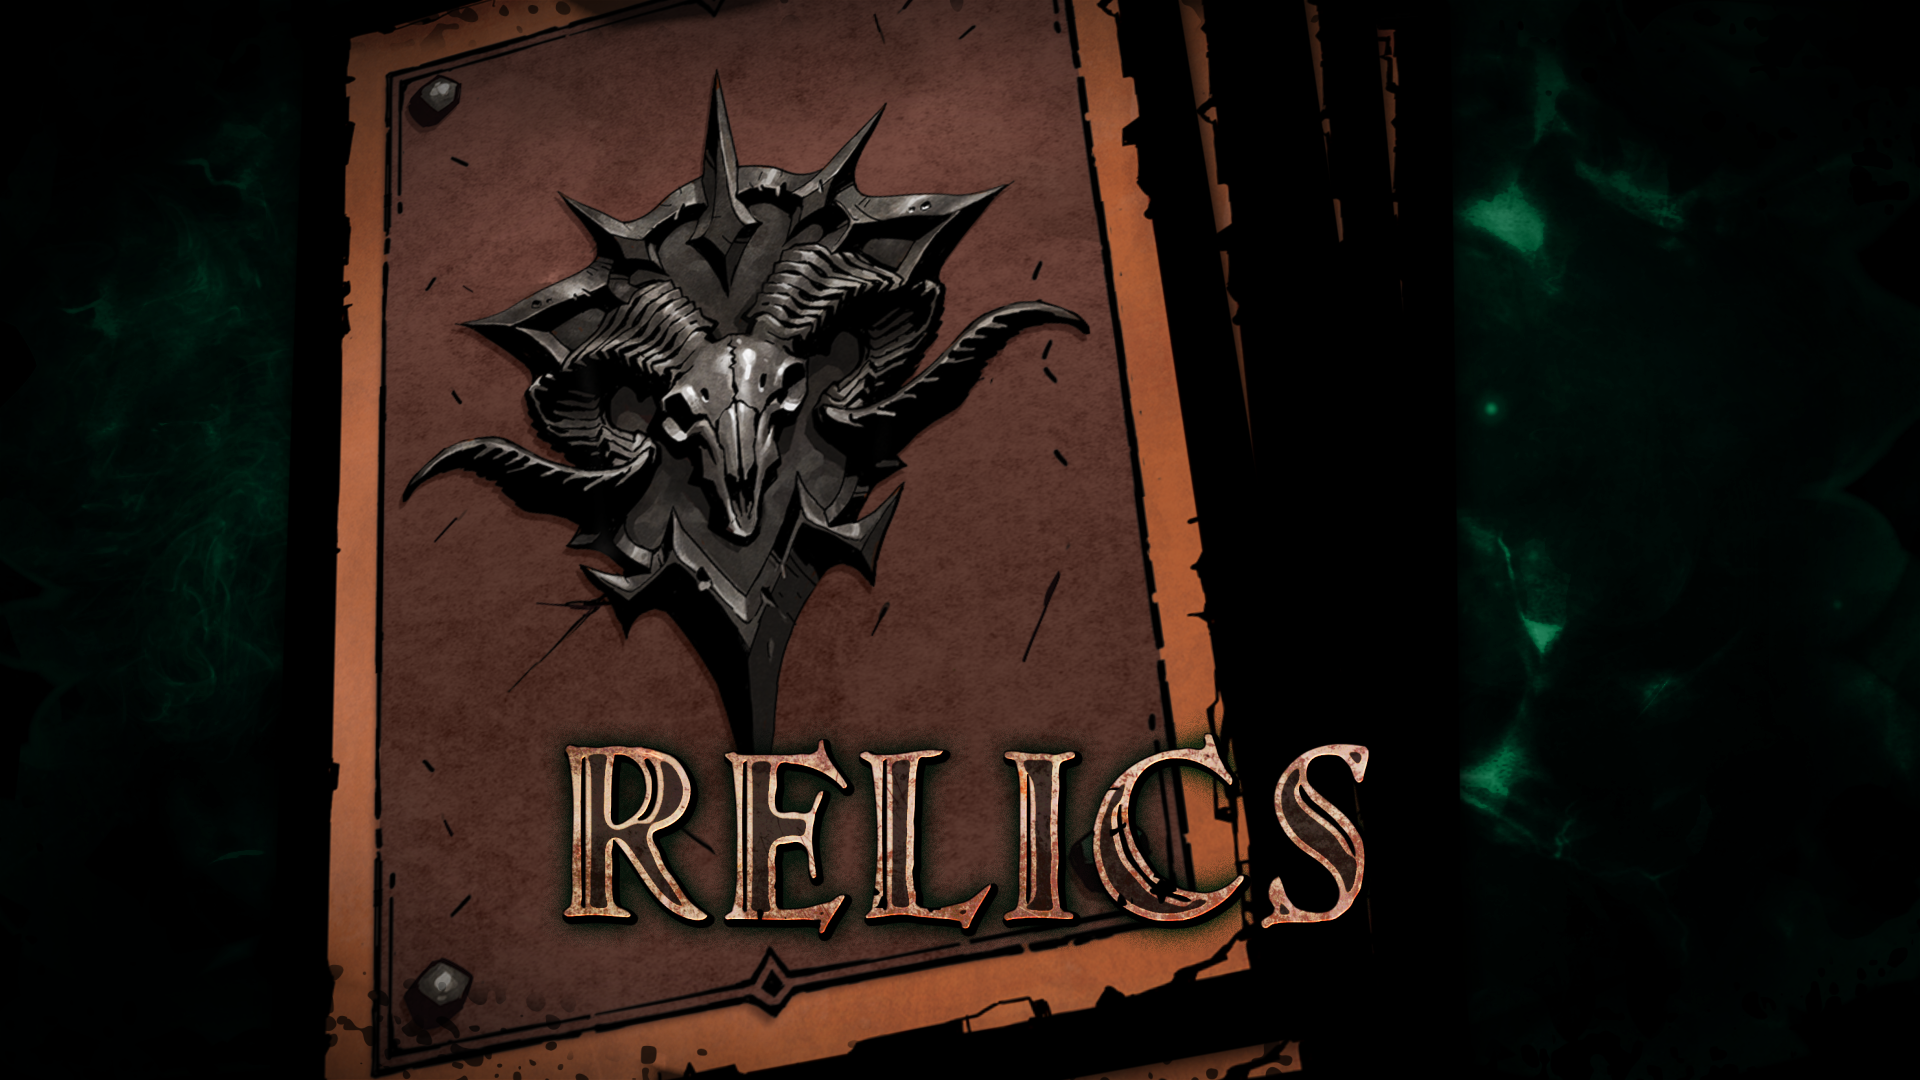 RELIC AND ARTIFACT FAQ - Q: When can I play Artifacts and Relics? What's the order of operations when playing against another card?A: Cards will say when they are able to be played (Opponent's Turn, Any Turn, etc.) and can be used at any point during the turn in which they can be used, but some cards are used in response to other cards being played. When an opponent plays their card against the player, the player can play another card as a response. i.e. An opponent plays a card that removes 1 health, but the player has a card that instantly heals for 1 health that they play immediately after that card. This would stop the application of that damage onto the player.